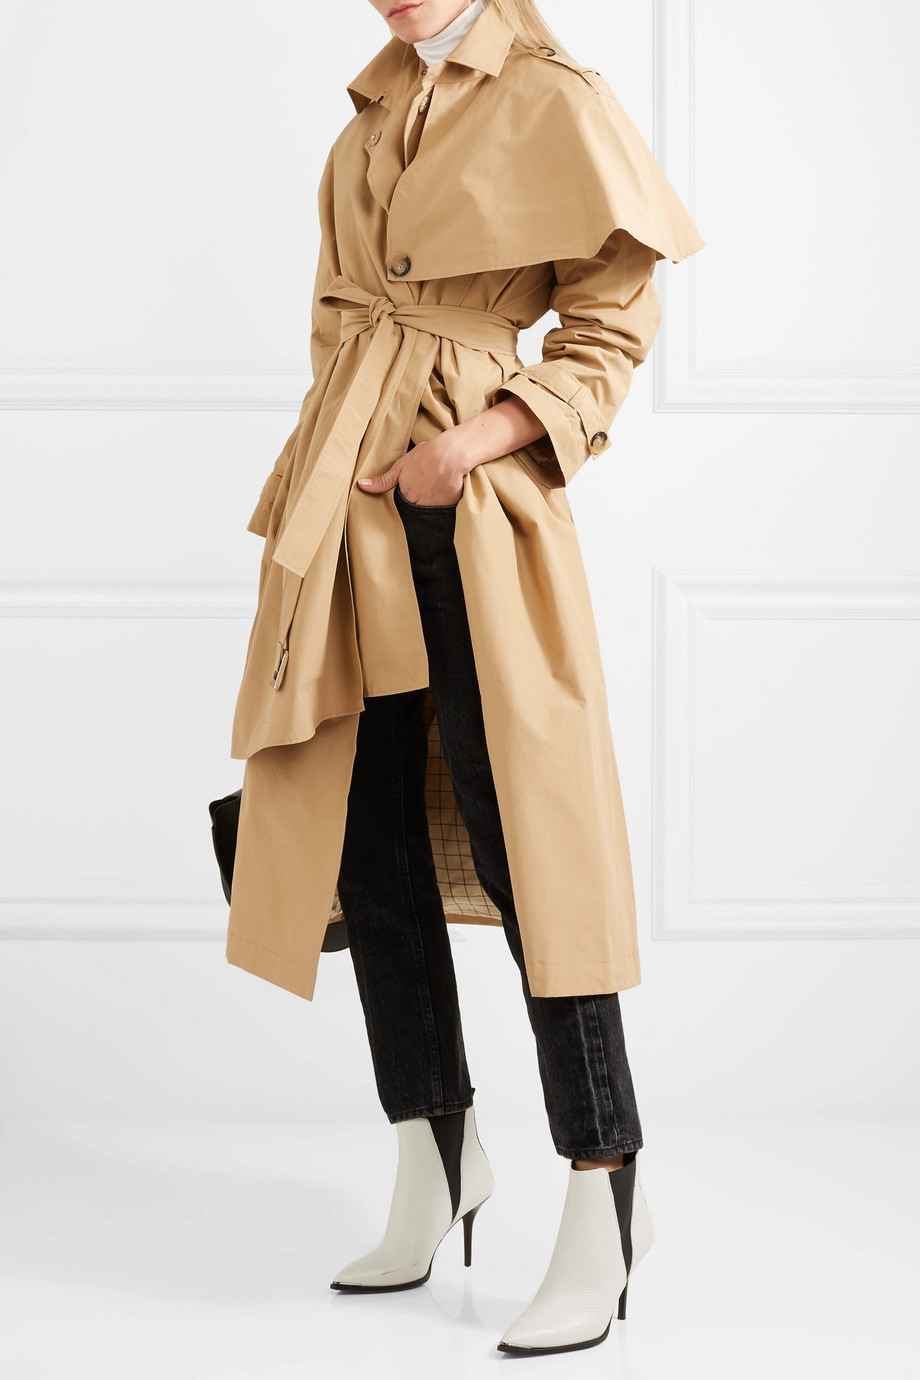 AWAKE Cape effect Trench Coat  Once you've seen one beige trench coat, you've seen them all - right? A.W.A.K.E.'s founder Natalia Alaverdian is here to prove you wrong. Part of her Resort '18 collection, this version of the iconic staple is tailored with an asymmetric cape-effect layer. Made in the UK, it's cut from cotton-blend that's weighty enough to keep you warm but light enough to wear over shirts and sweaters without looking bulky.